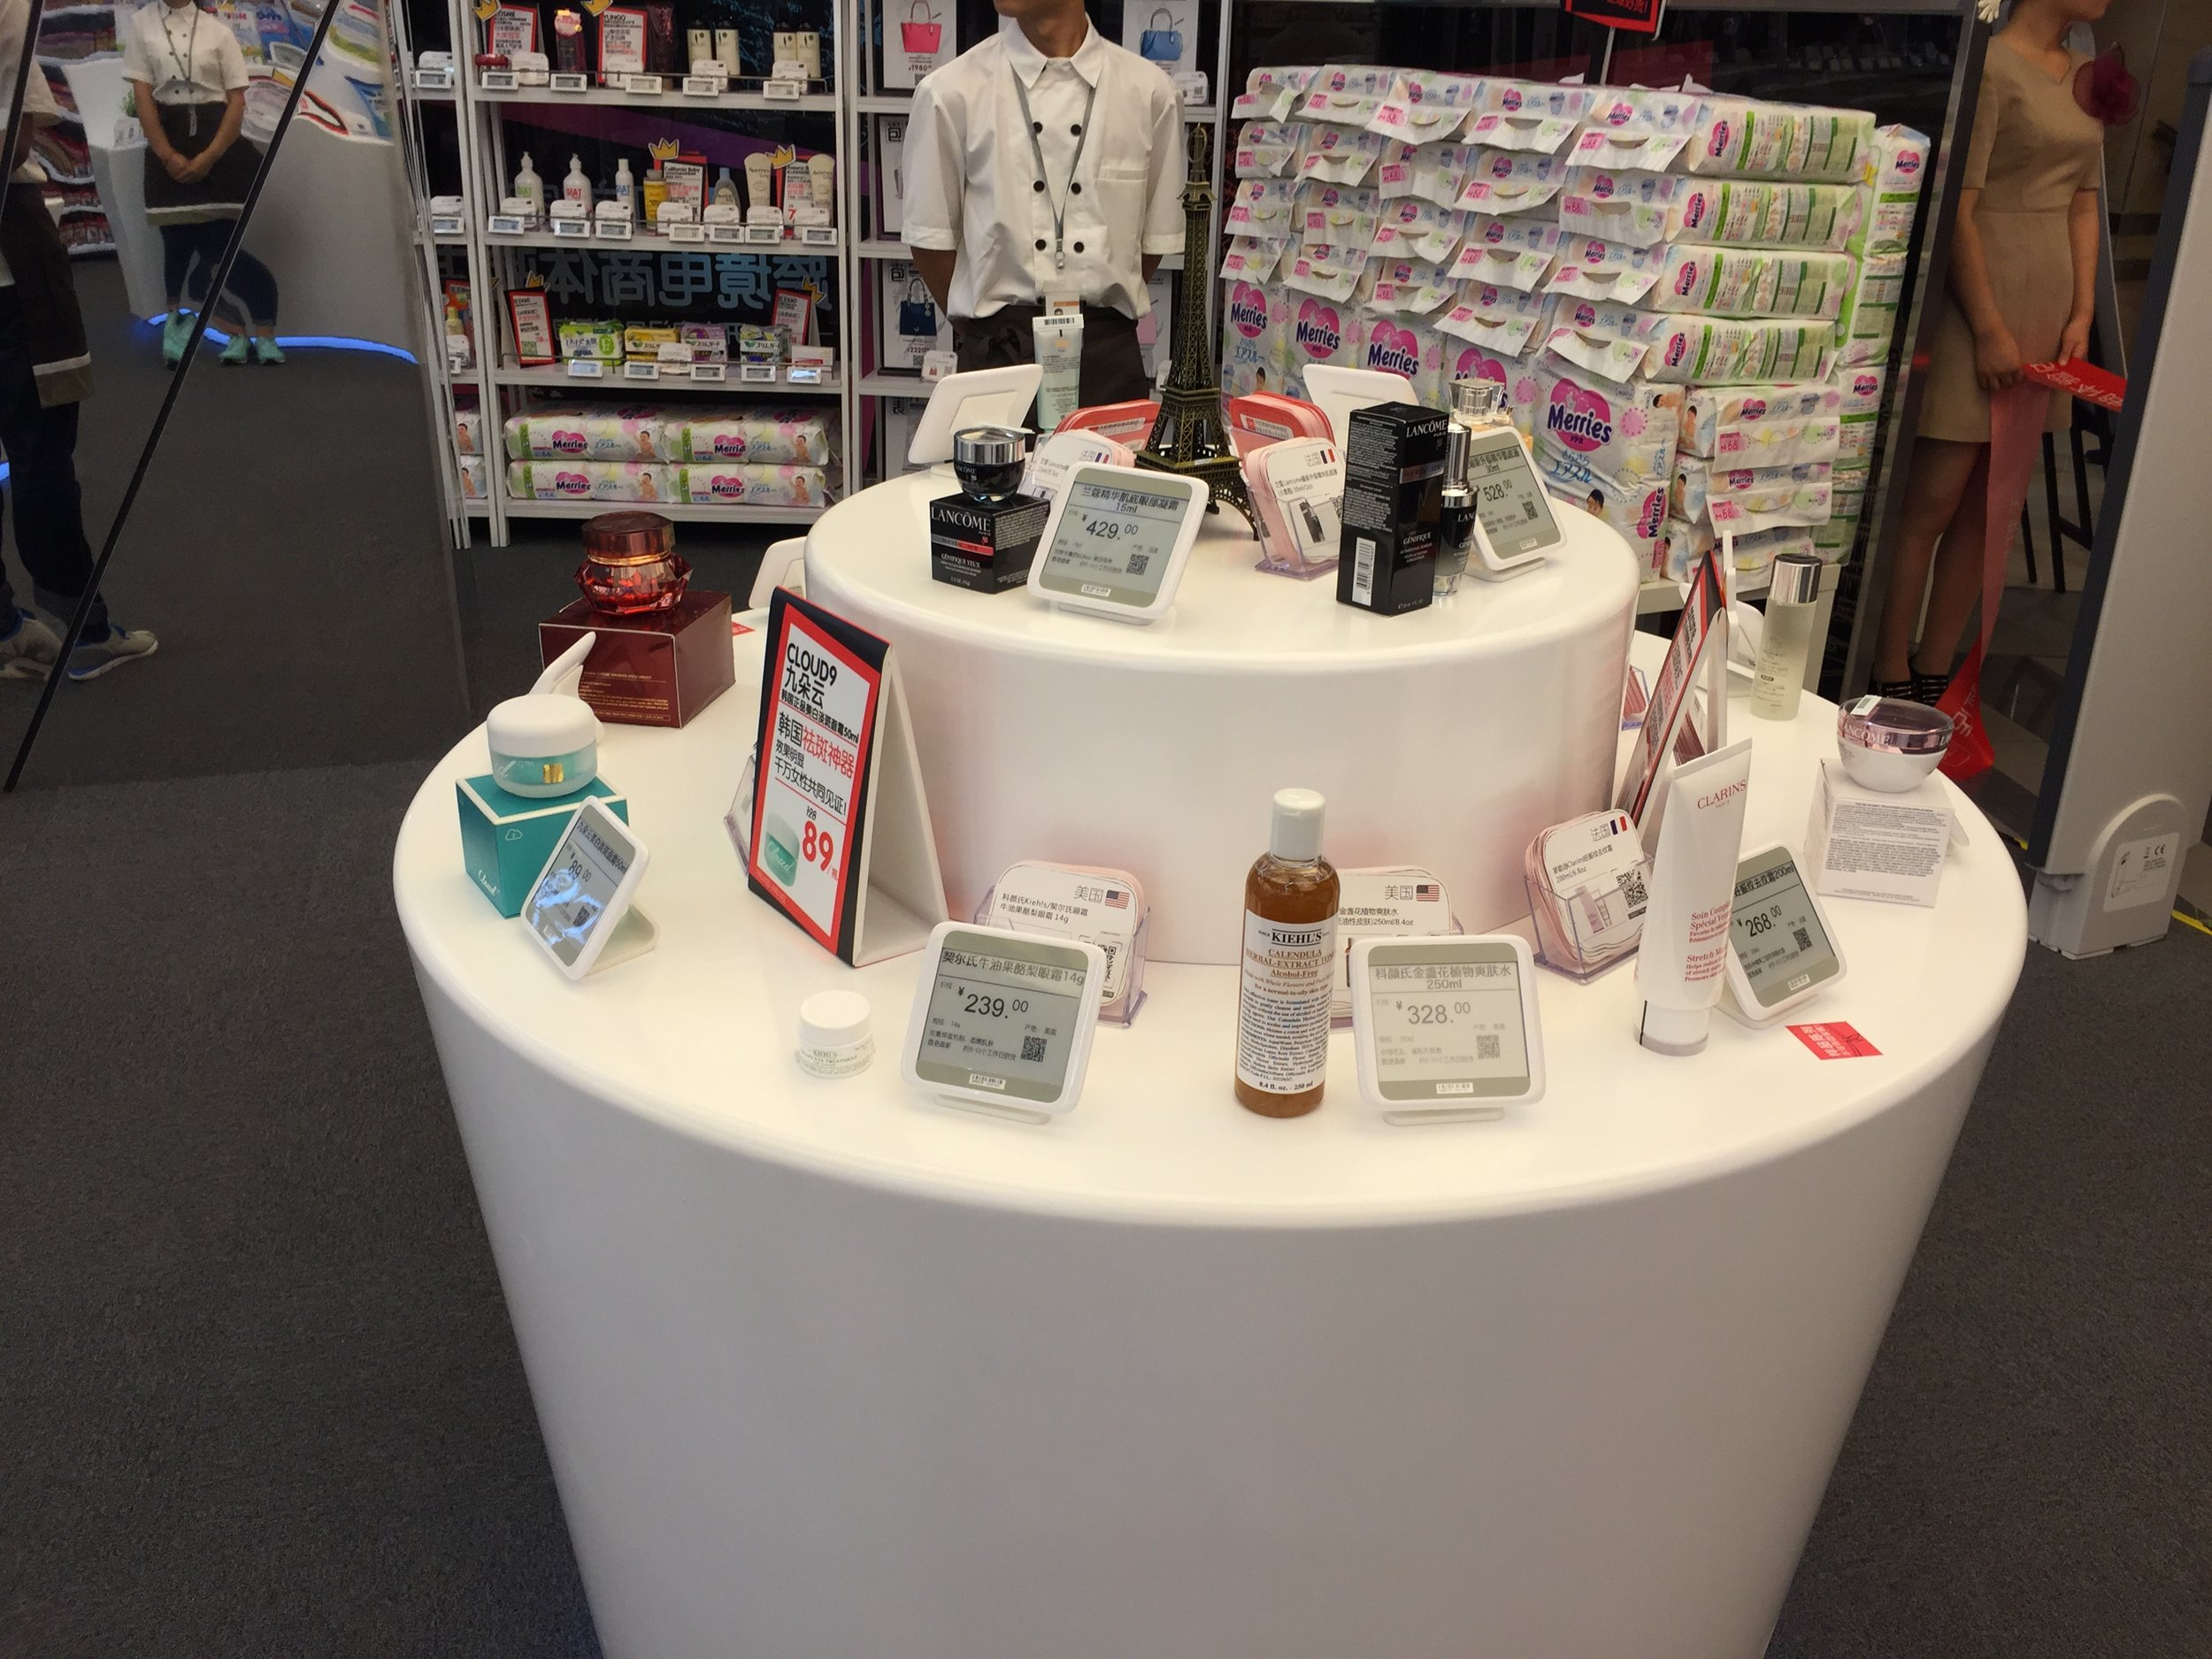 XL epaper digital labels fixed via adhesive stands to a central product display